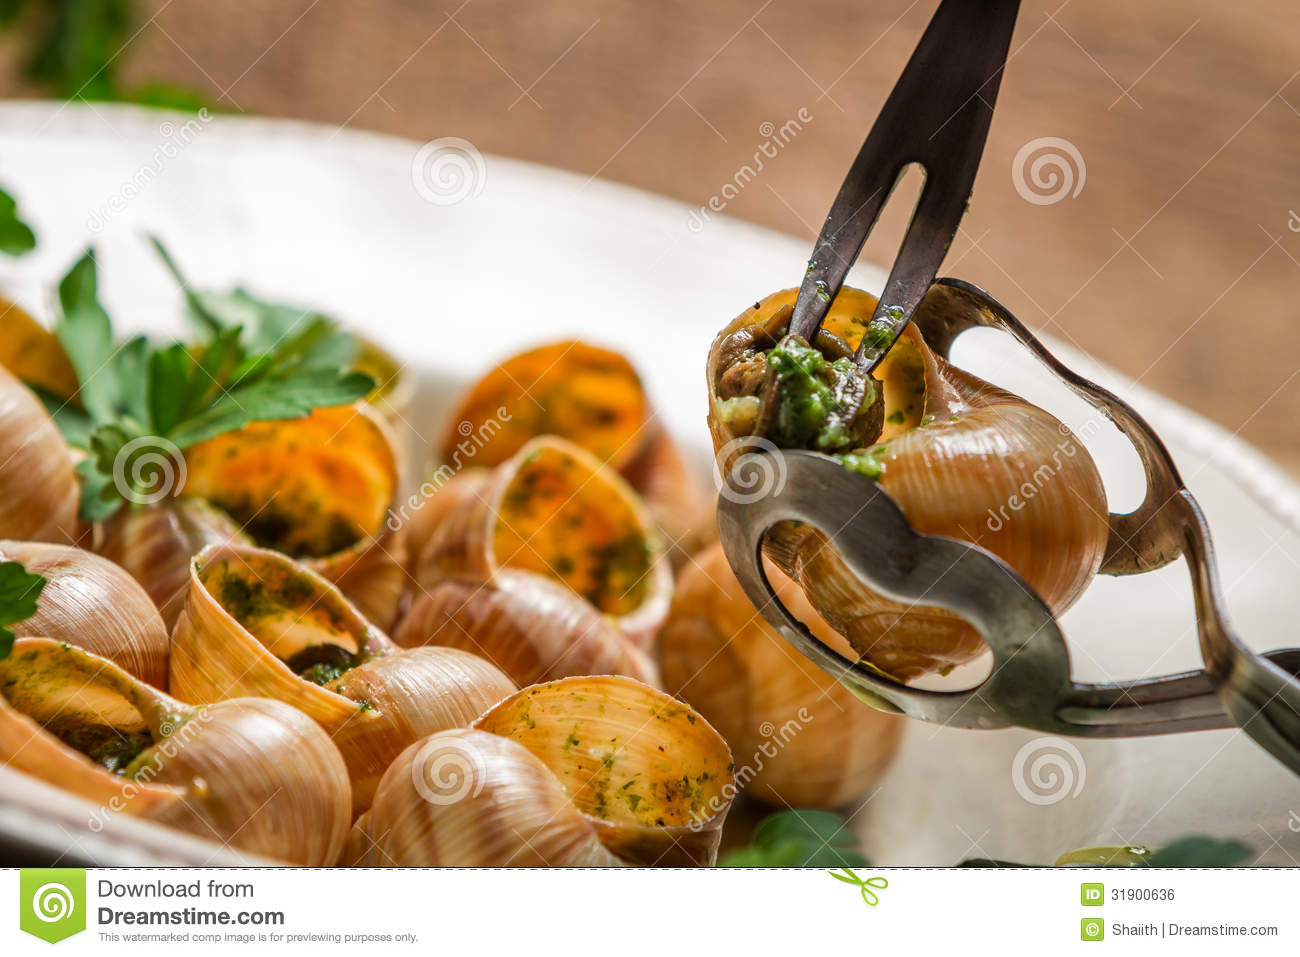 eating the fried snails with garlic butter royalty free